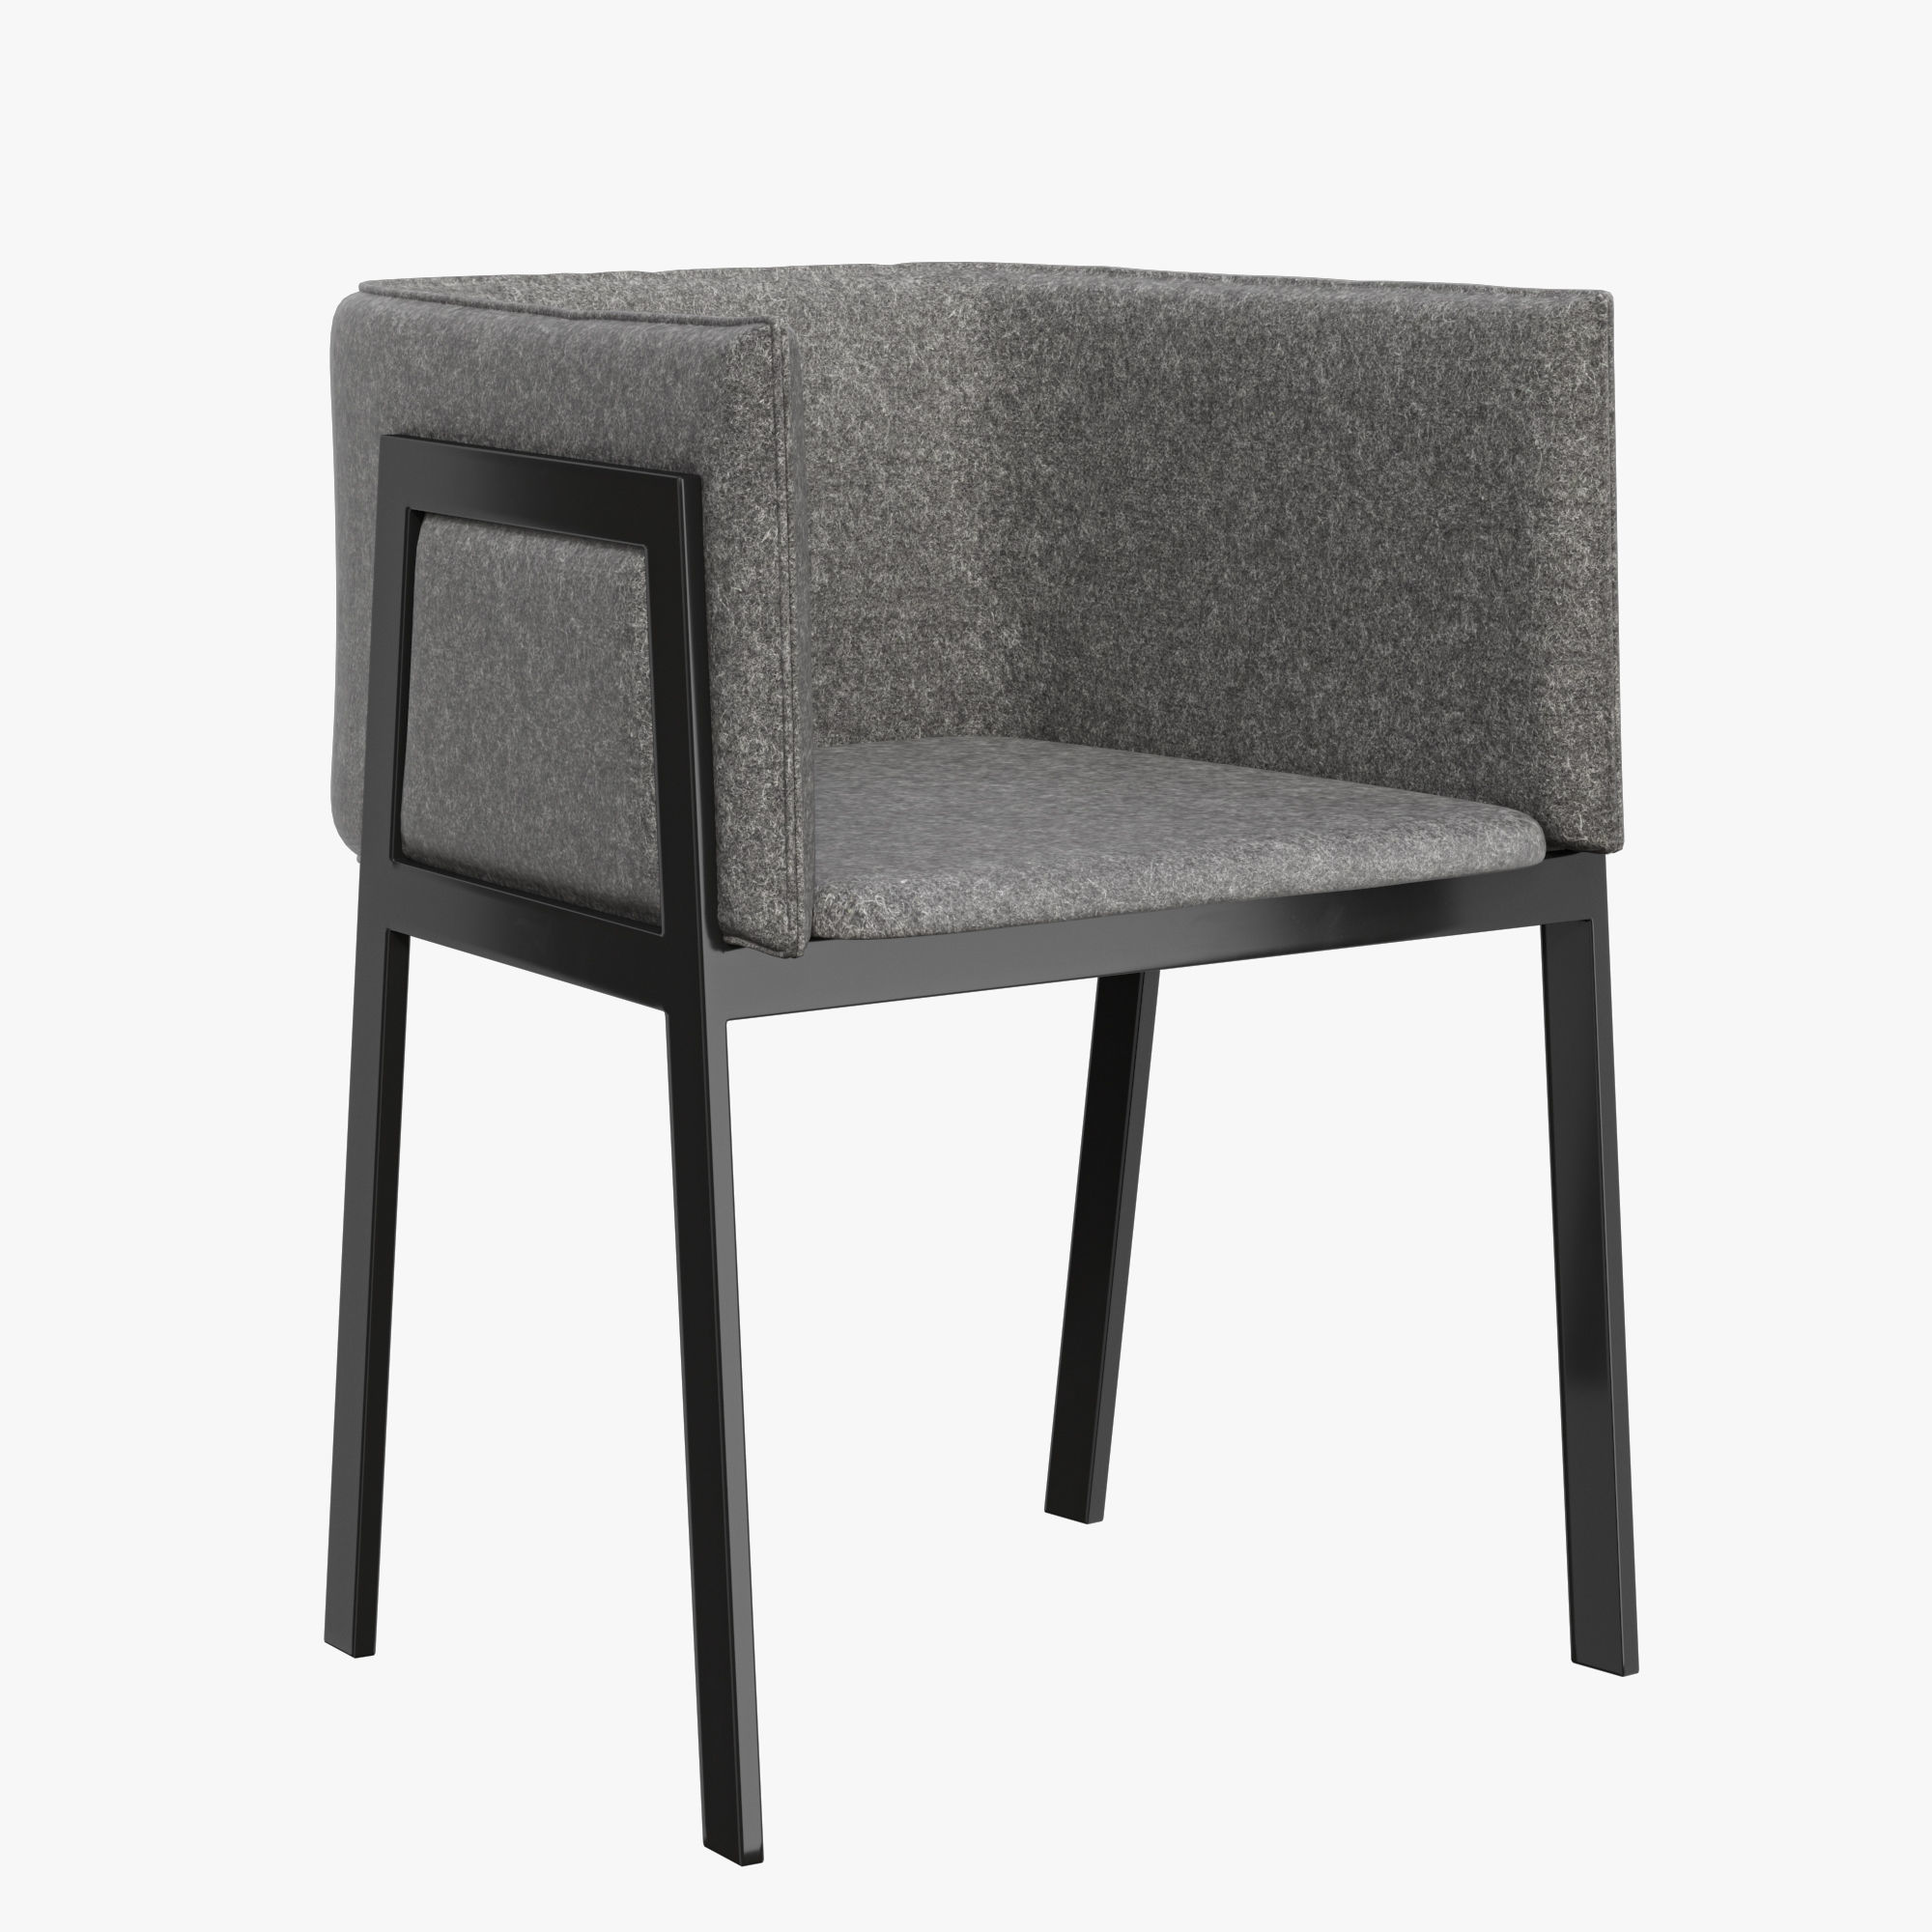 Pin-Up Grace Chair By Living Divani